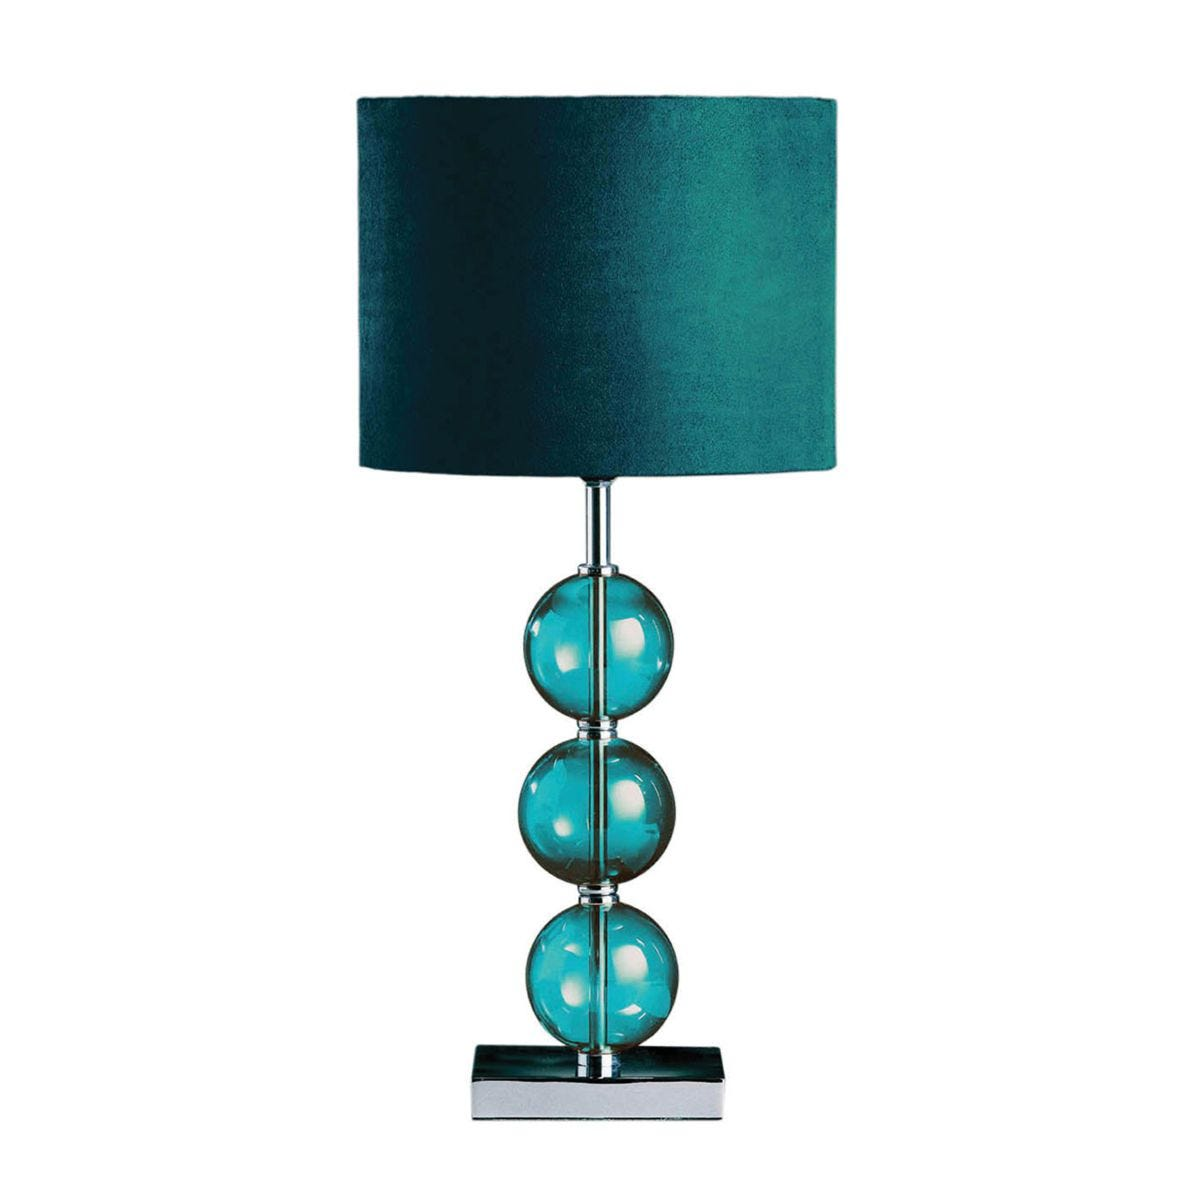 Premier Housewares Mistro Table Lamp with Teal Orb/Chrome Base & Teal Faux Suede Shade